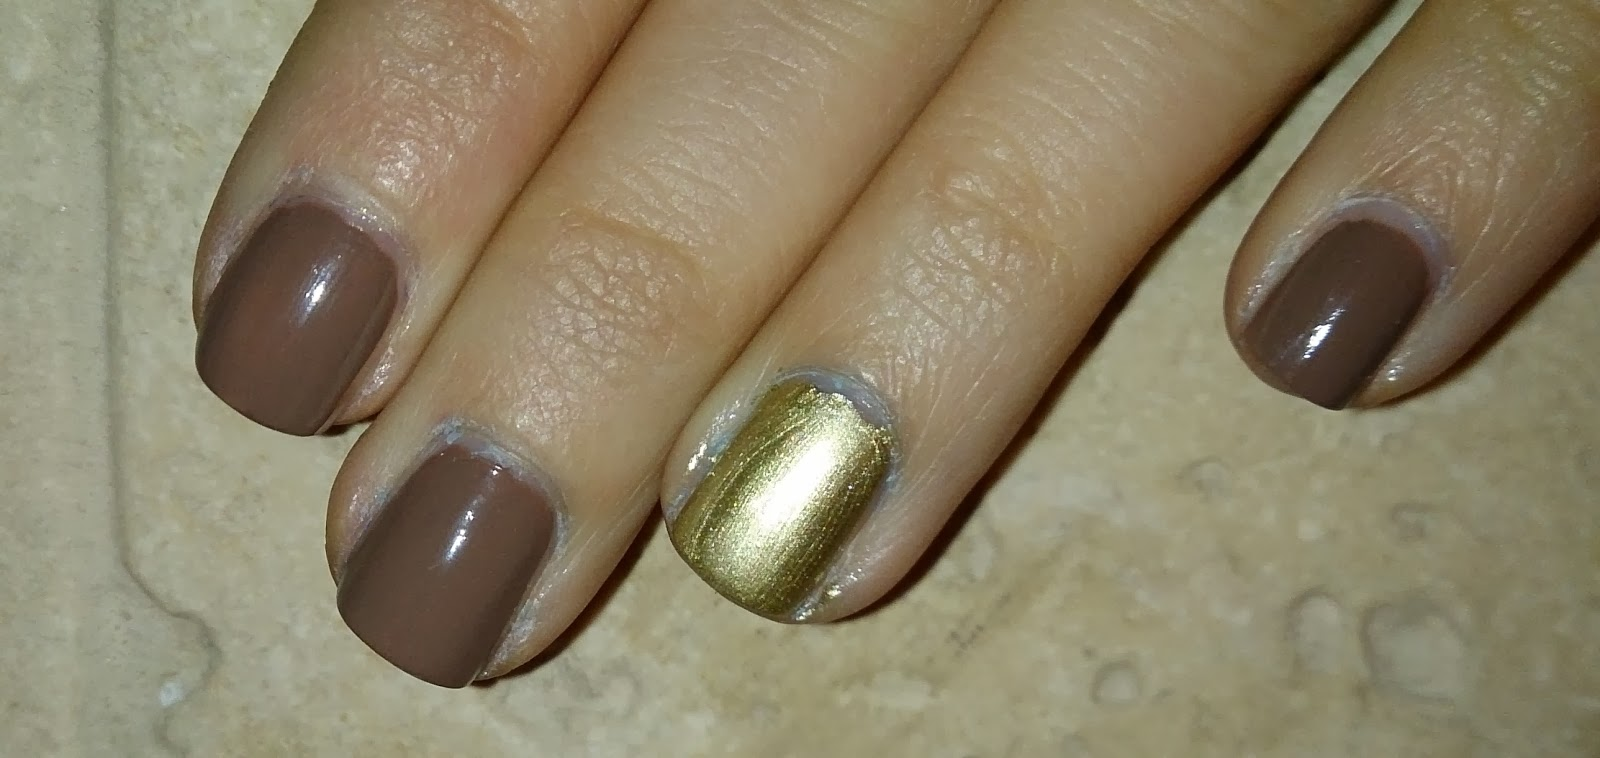 barry m nail polish varnish mushroom brown grey mocha np310 paint swatch gold foil effects